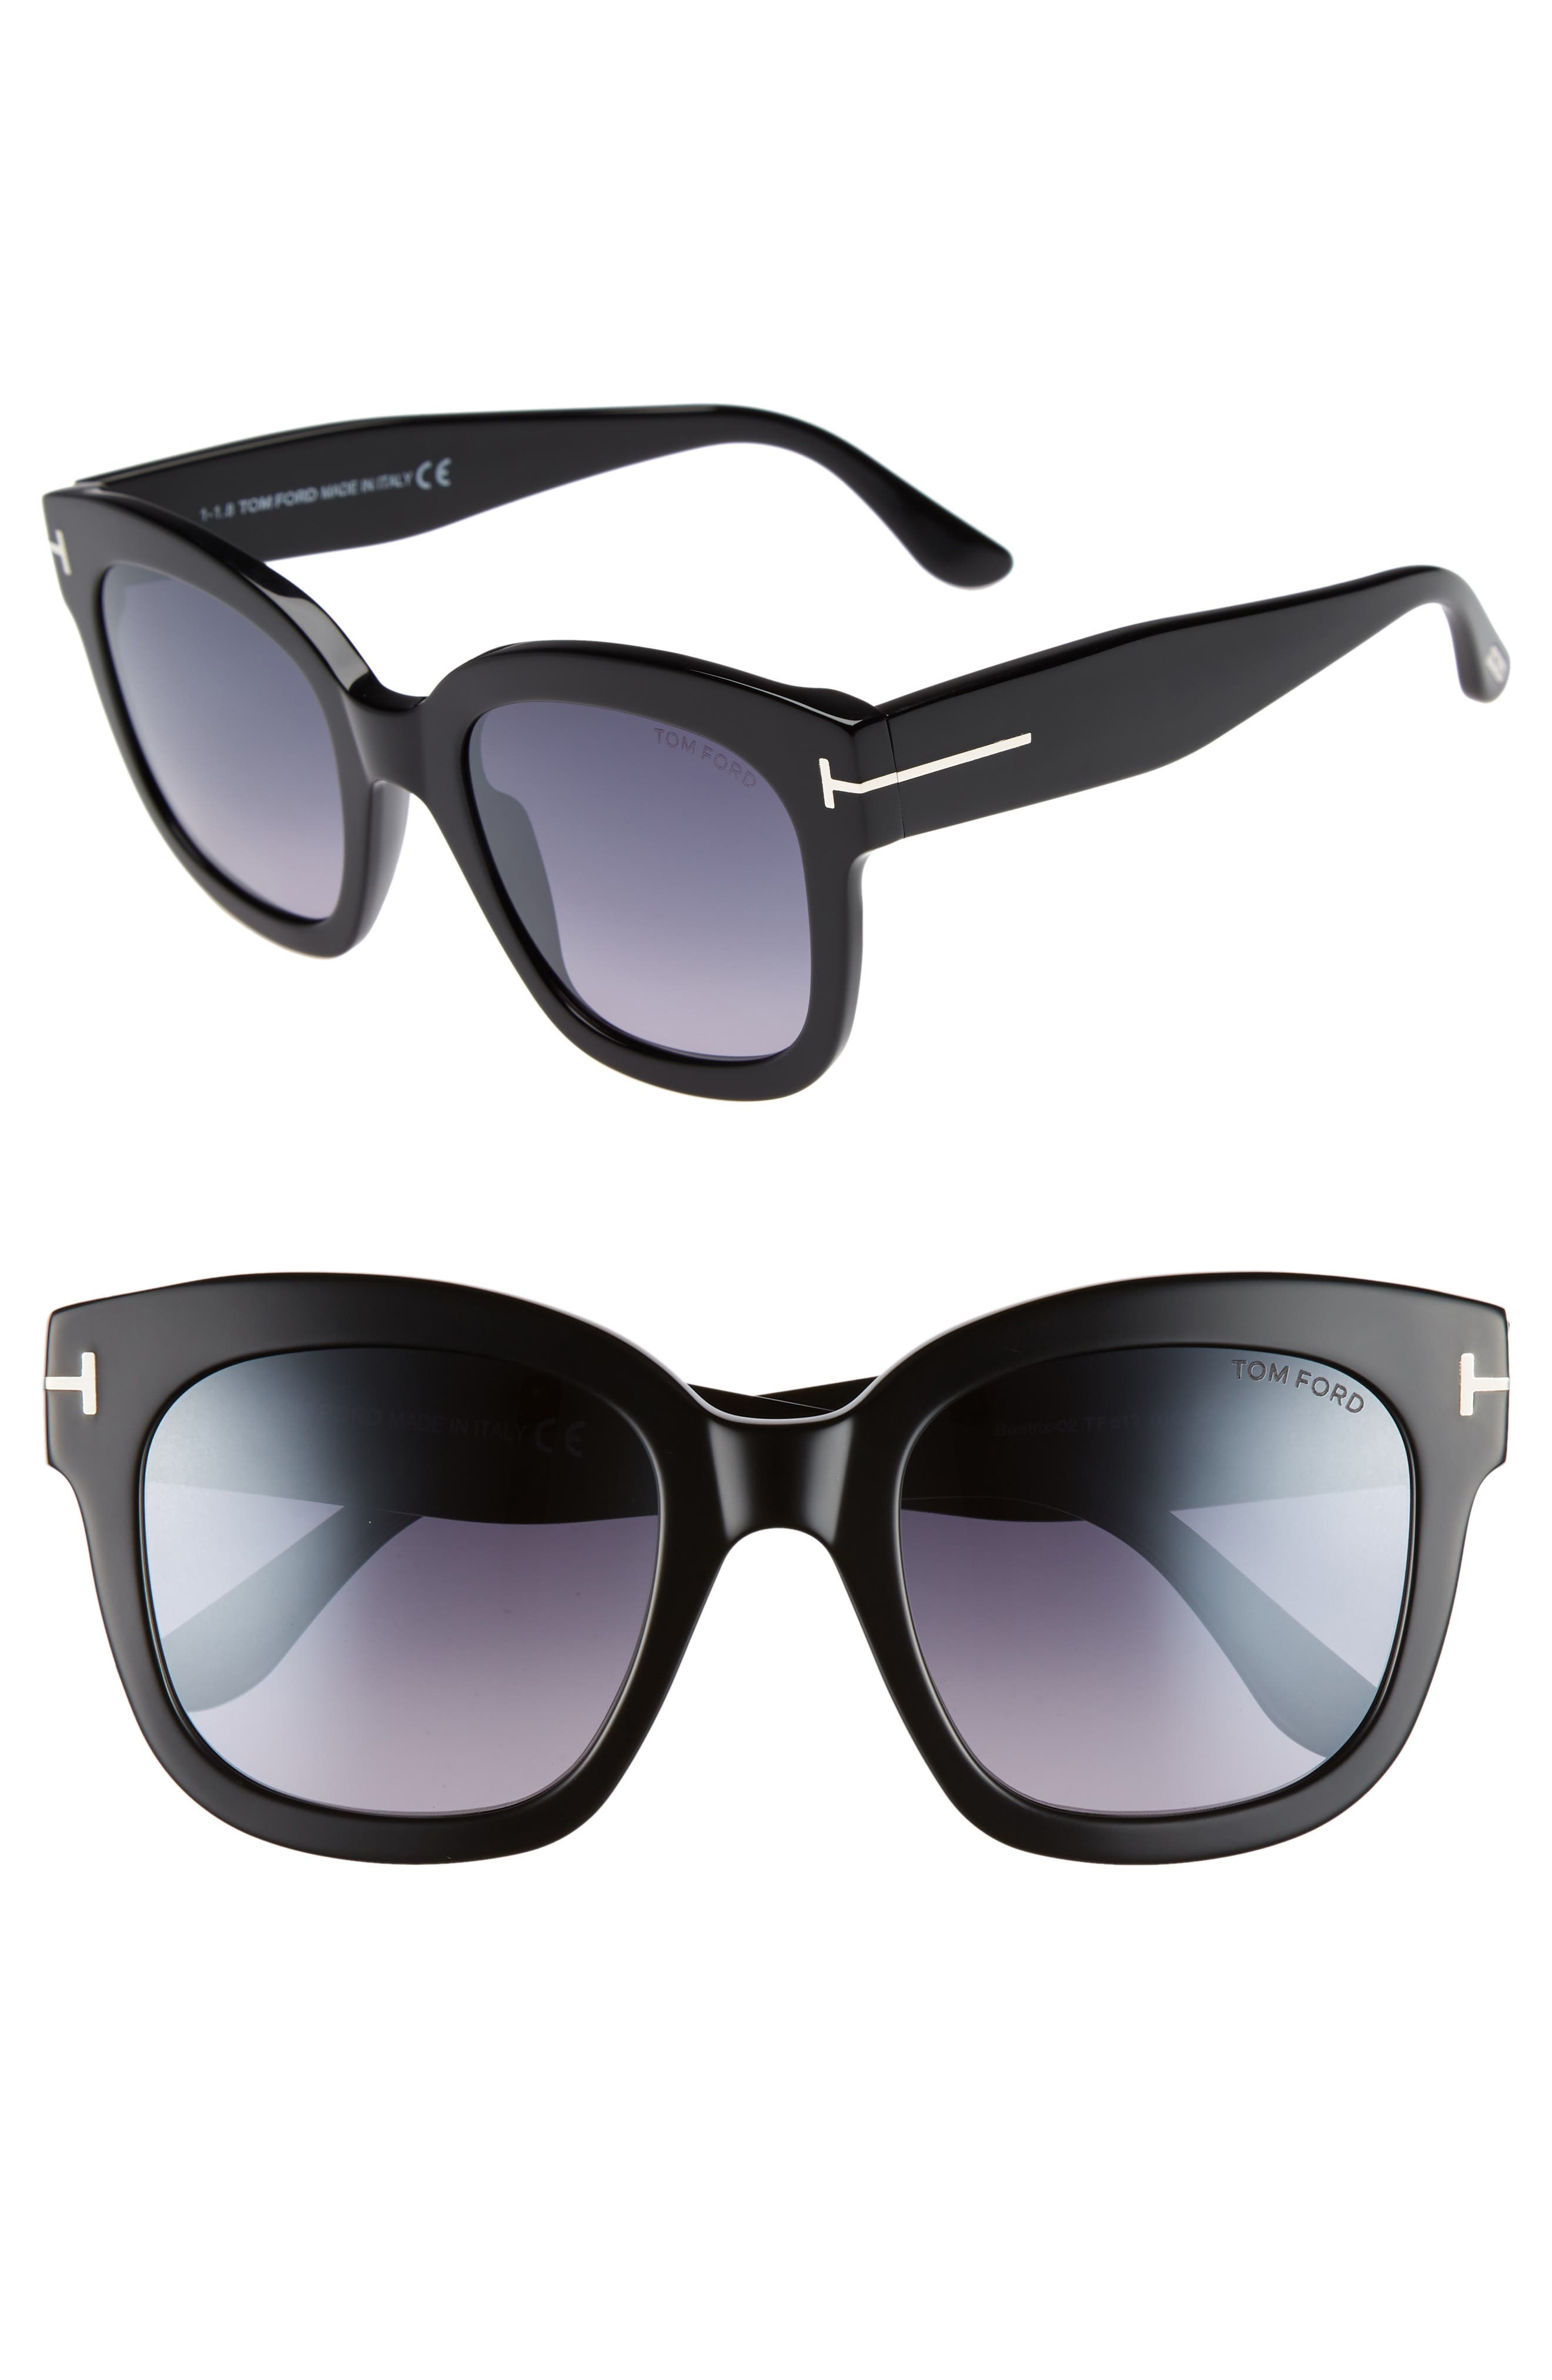 Beatrix 52mm Sunglasses,                             Main thumbnail 1, color,                             SHINY BLACK/ SMOKE MIRROR